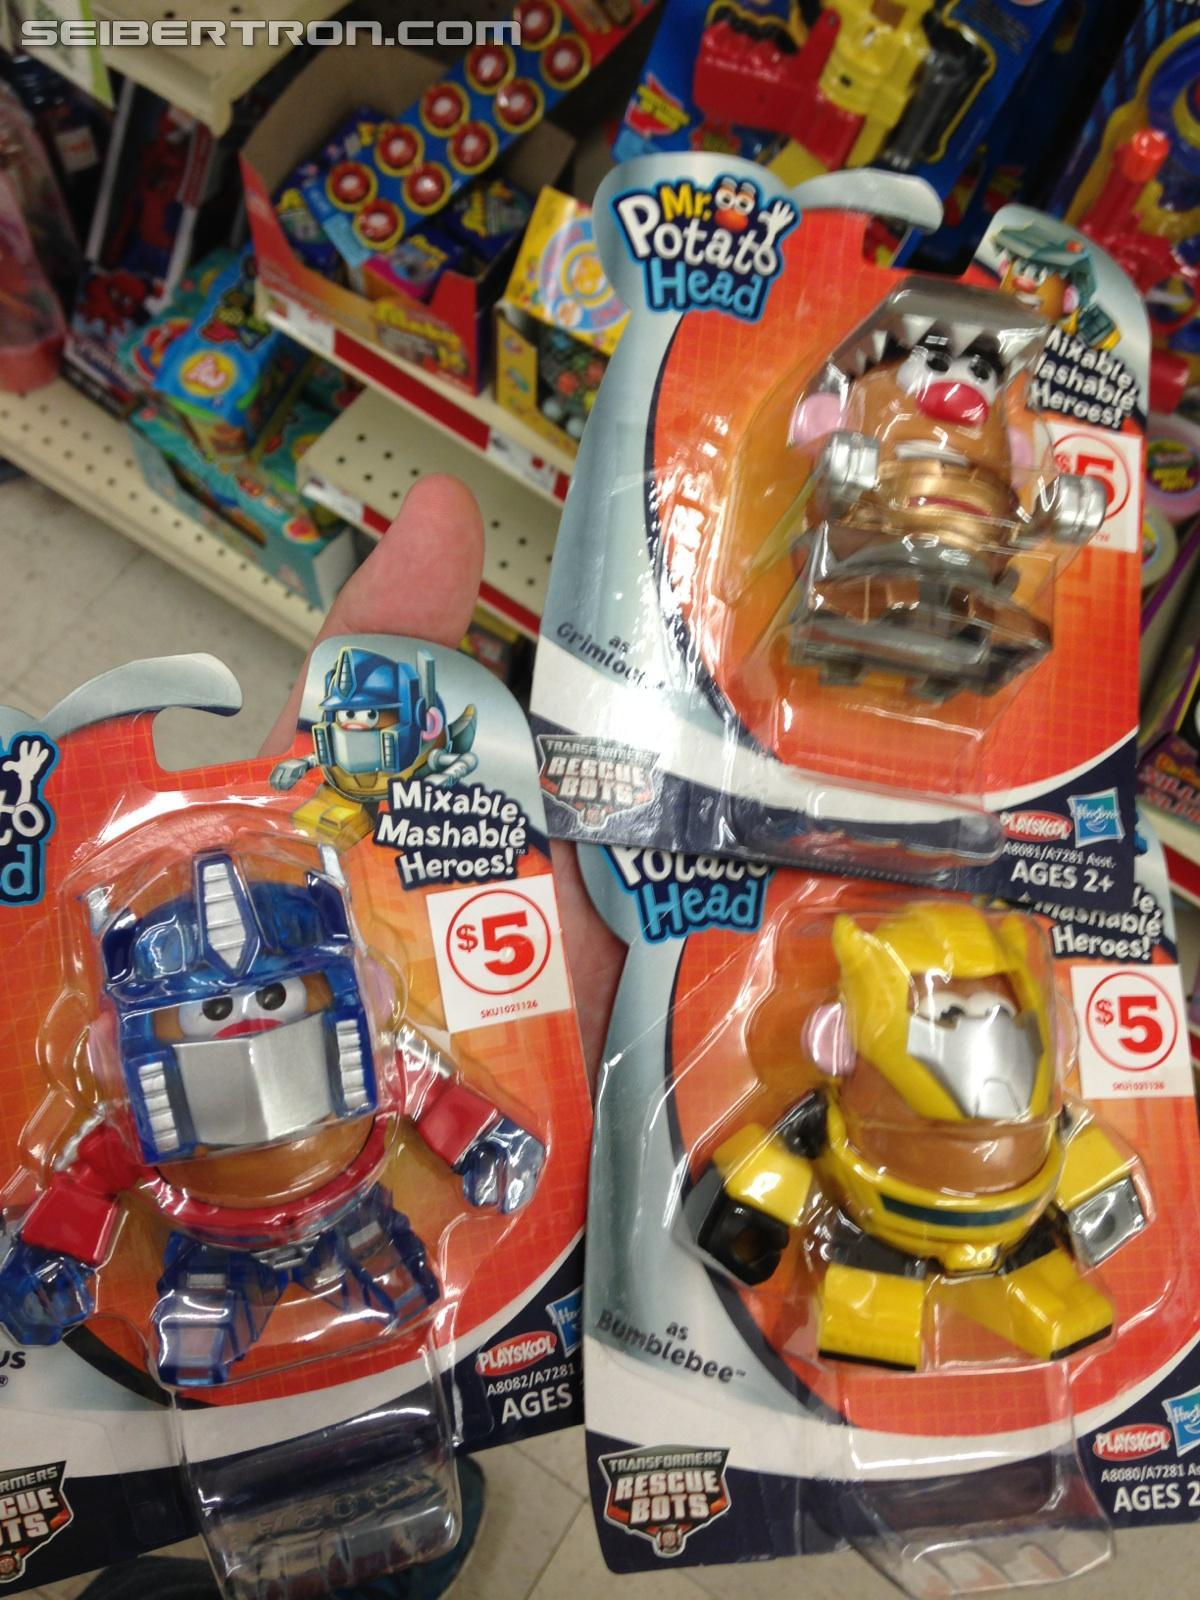 Transformers News: Transformers Mr. Potato Head Retail Sighting At Family Dollar